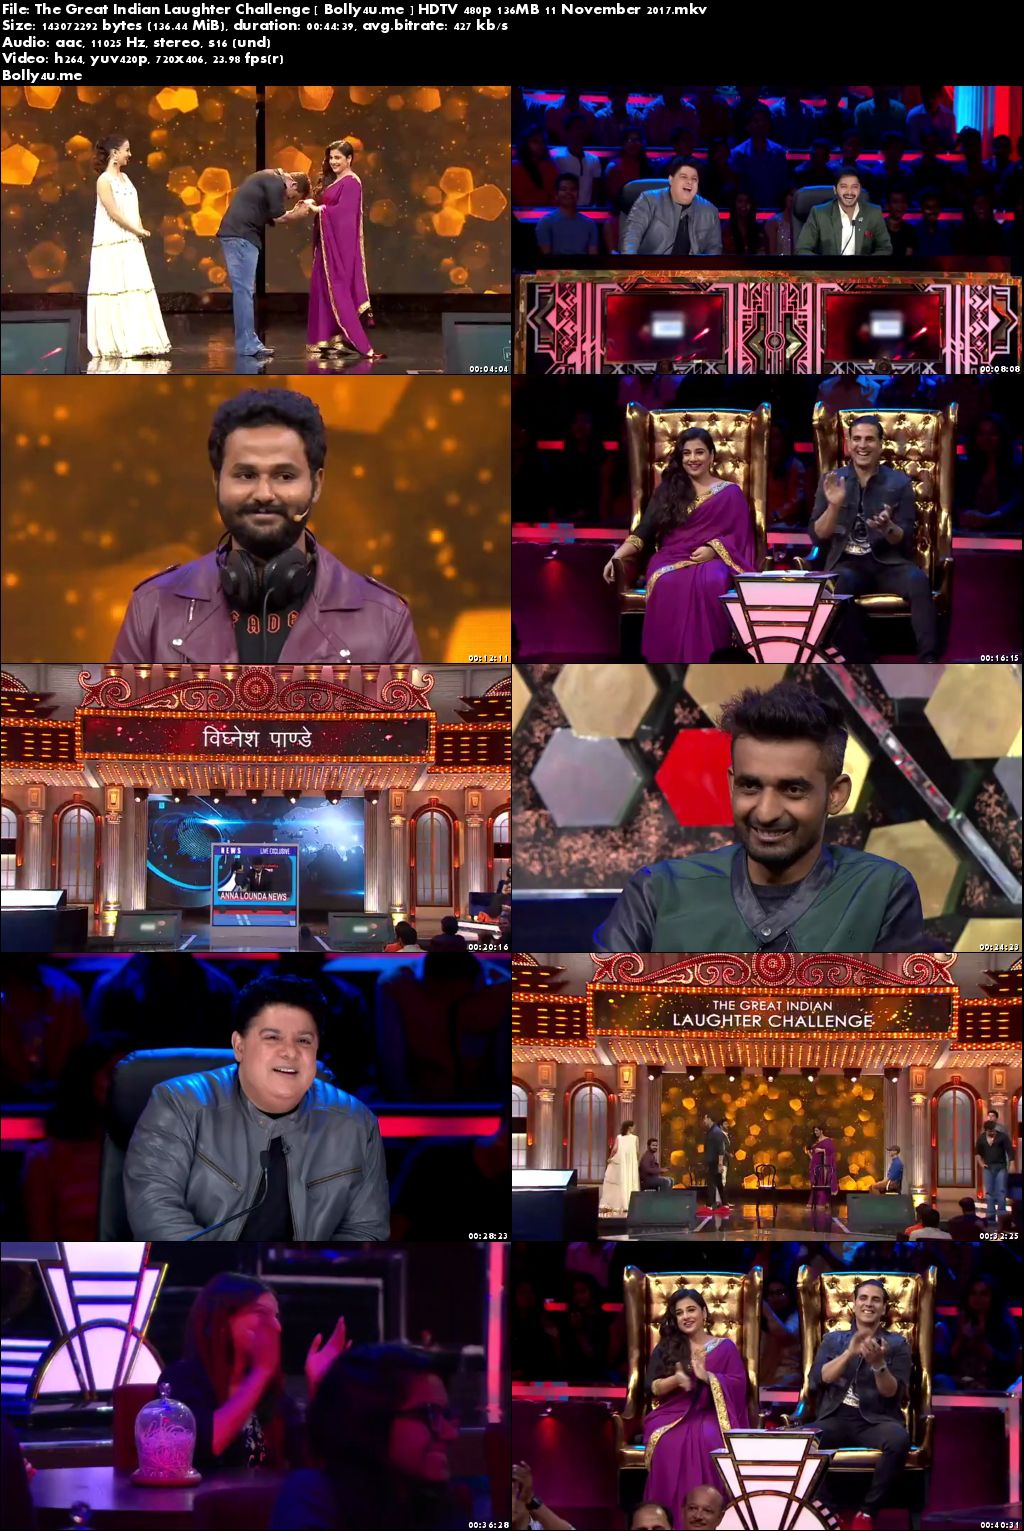 The Great Indian Laughter Challenge HDTV 480p 140MB 11 November 2017 Download